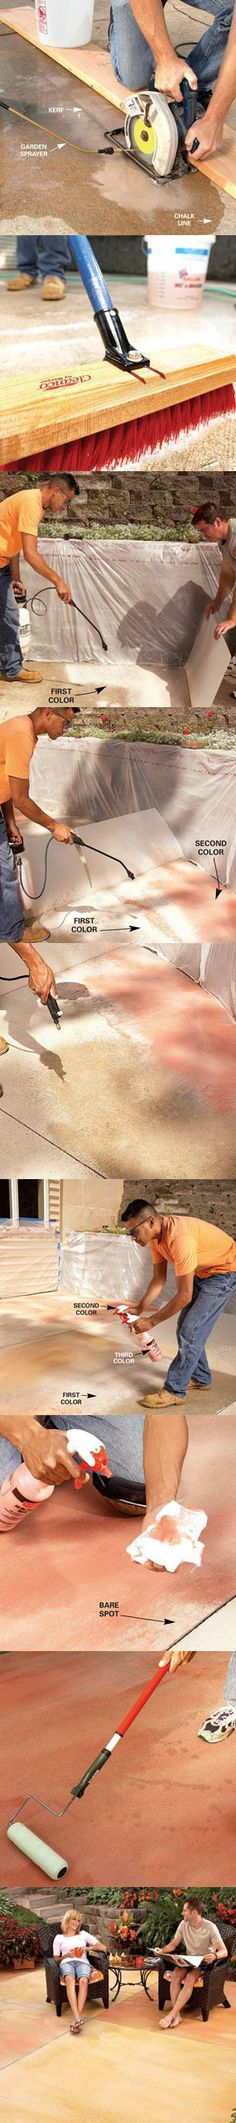 Learn how to renew your concrete patio at http://www.familyhandyman.com/DIY-Projects/Outdoor-Projects/Patio/Patio-Improvements/renew-your-concrete-patio/View-All